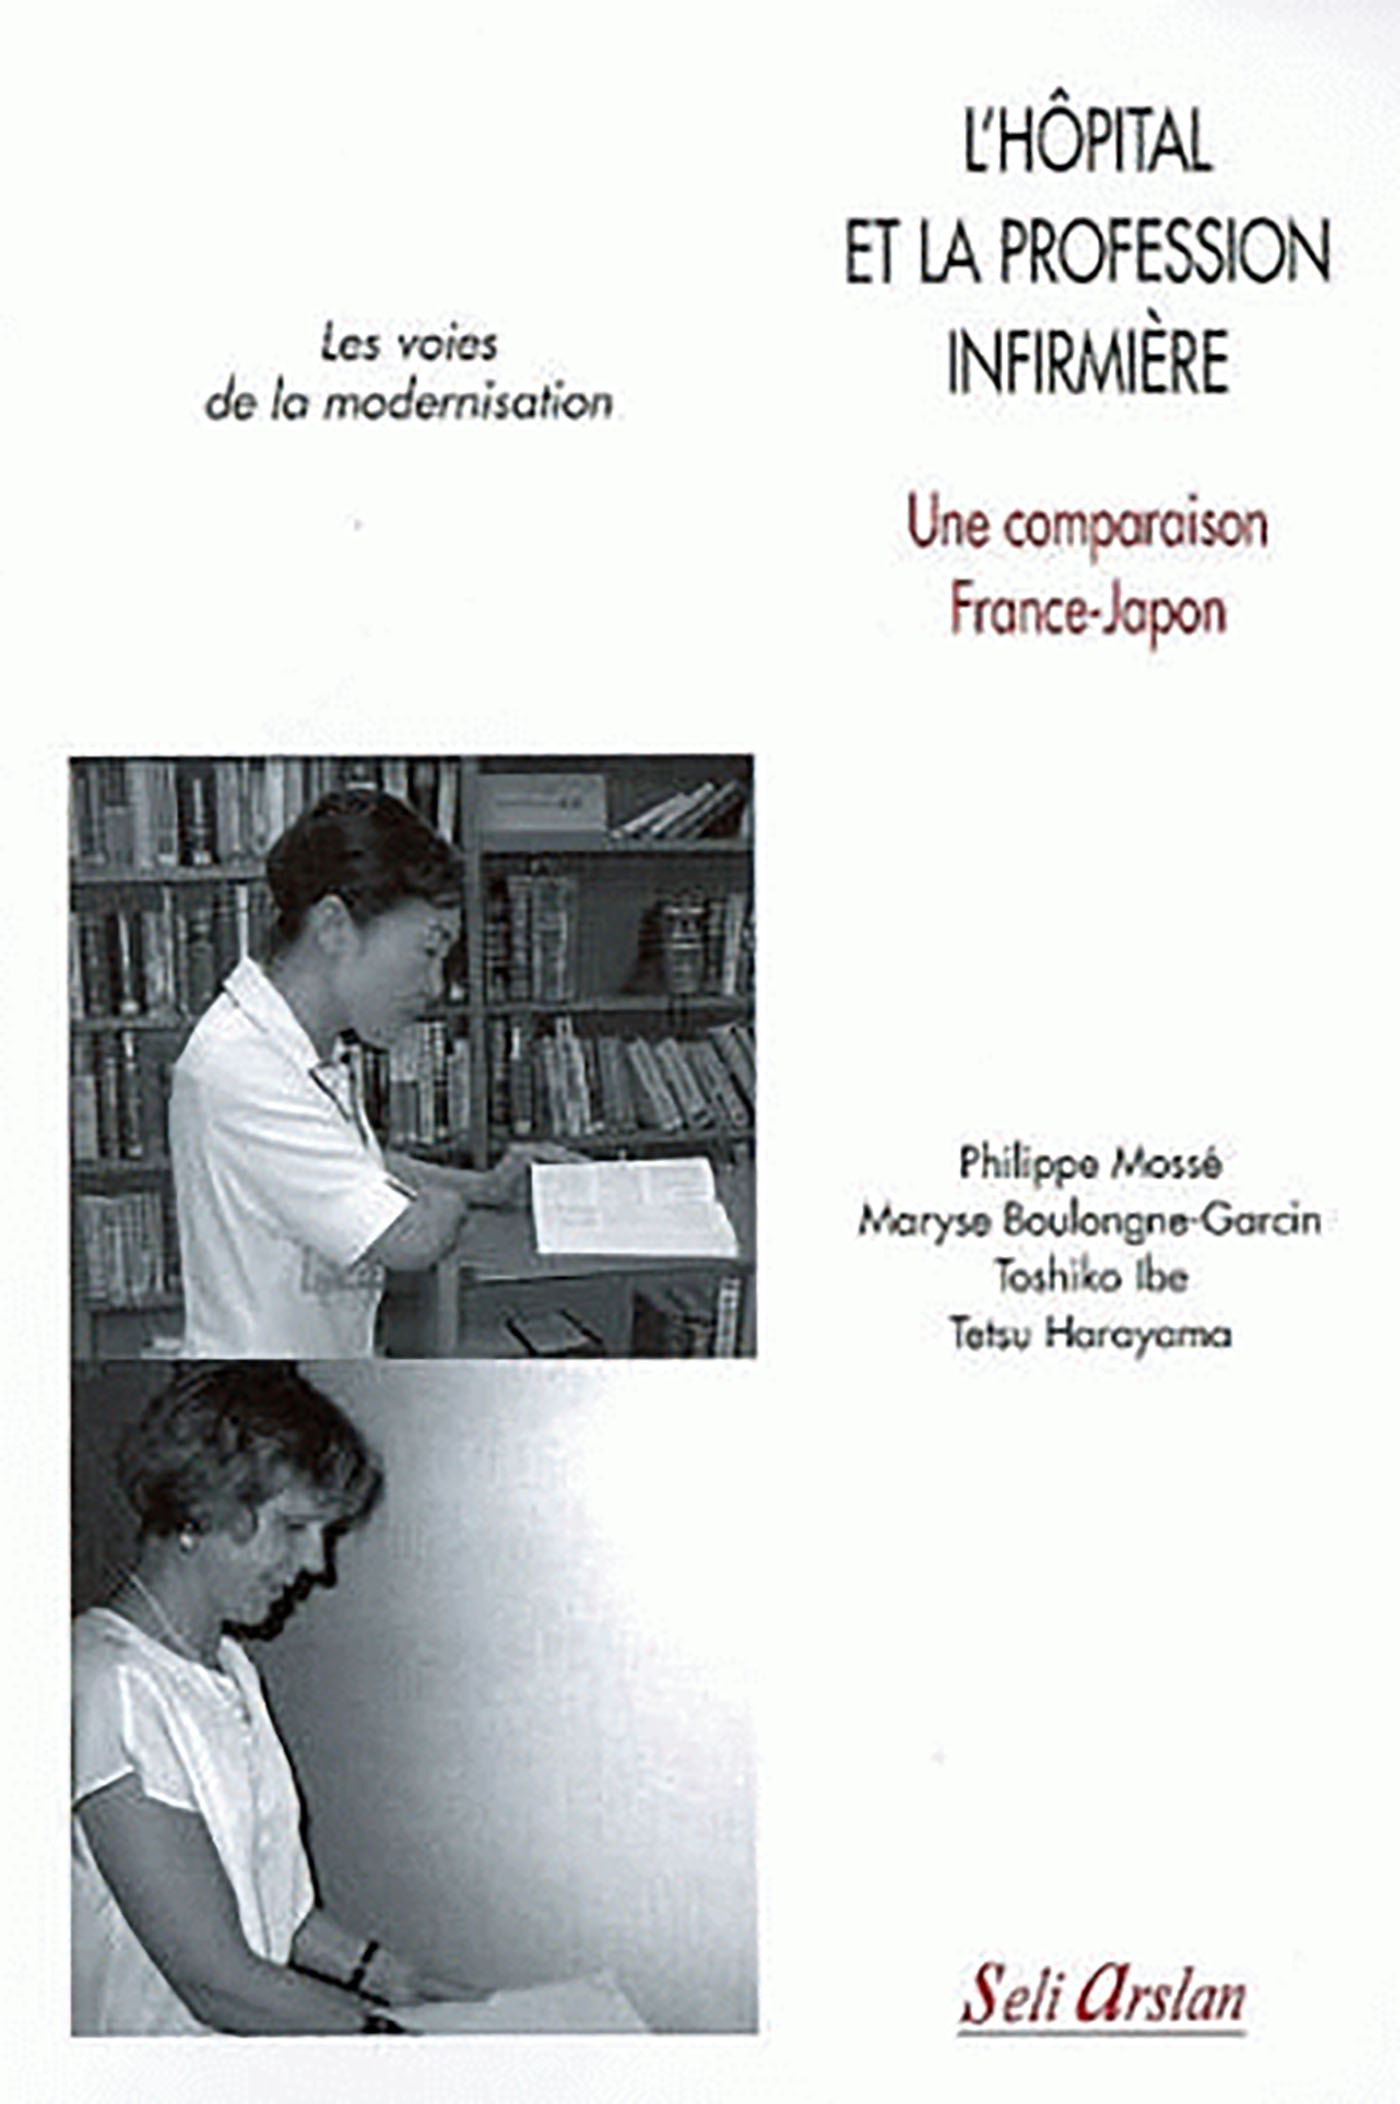 HOPITAL ET LA PROFESSION INFIRMIERE. UNE COMPARAISON FRANCE-JAPON (L')